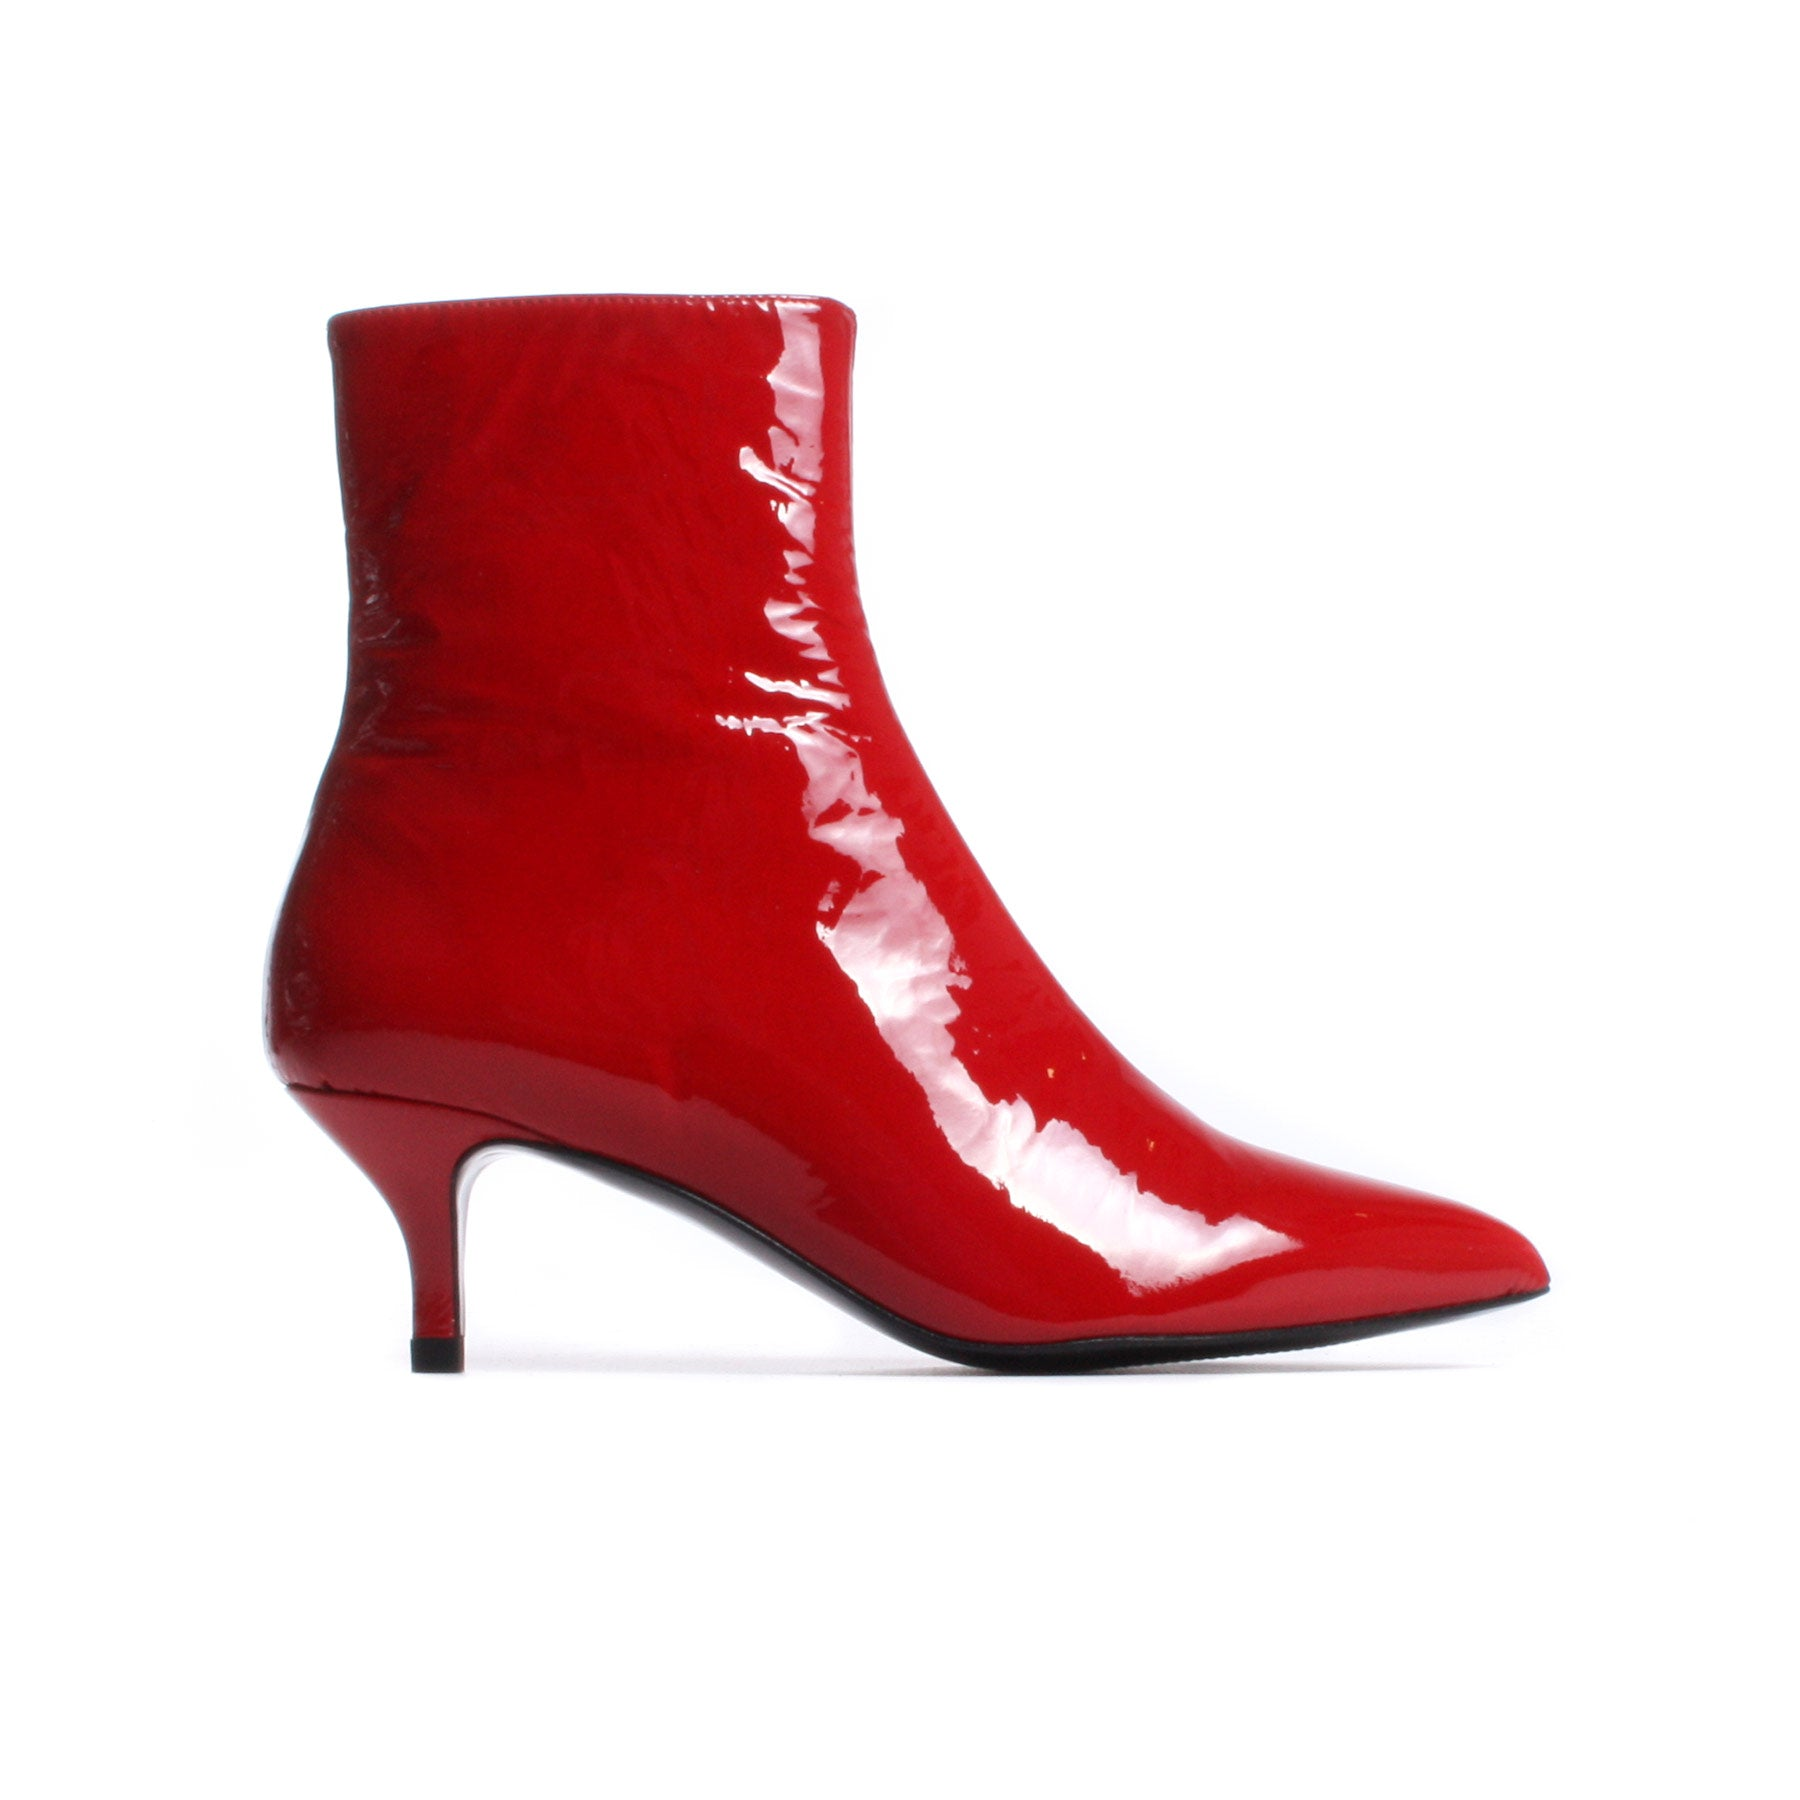 Pipasi Red Patent Leather